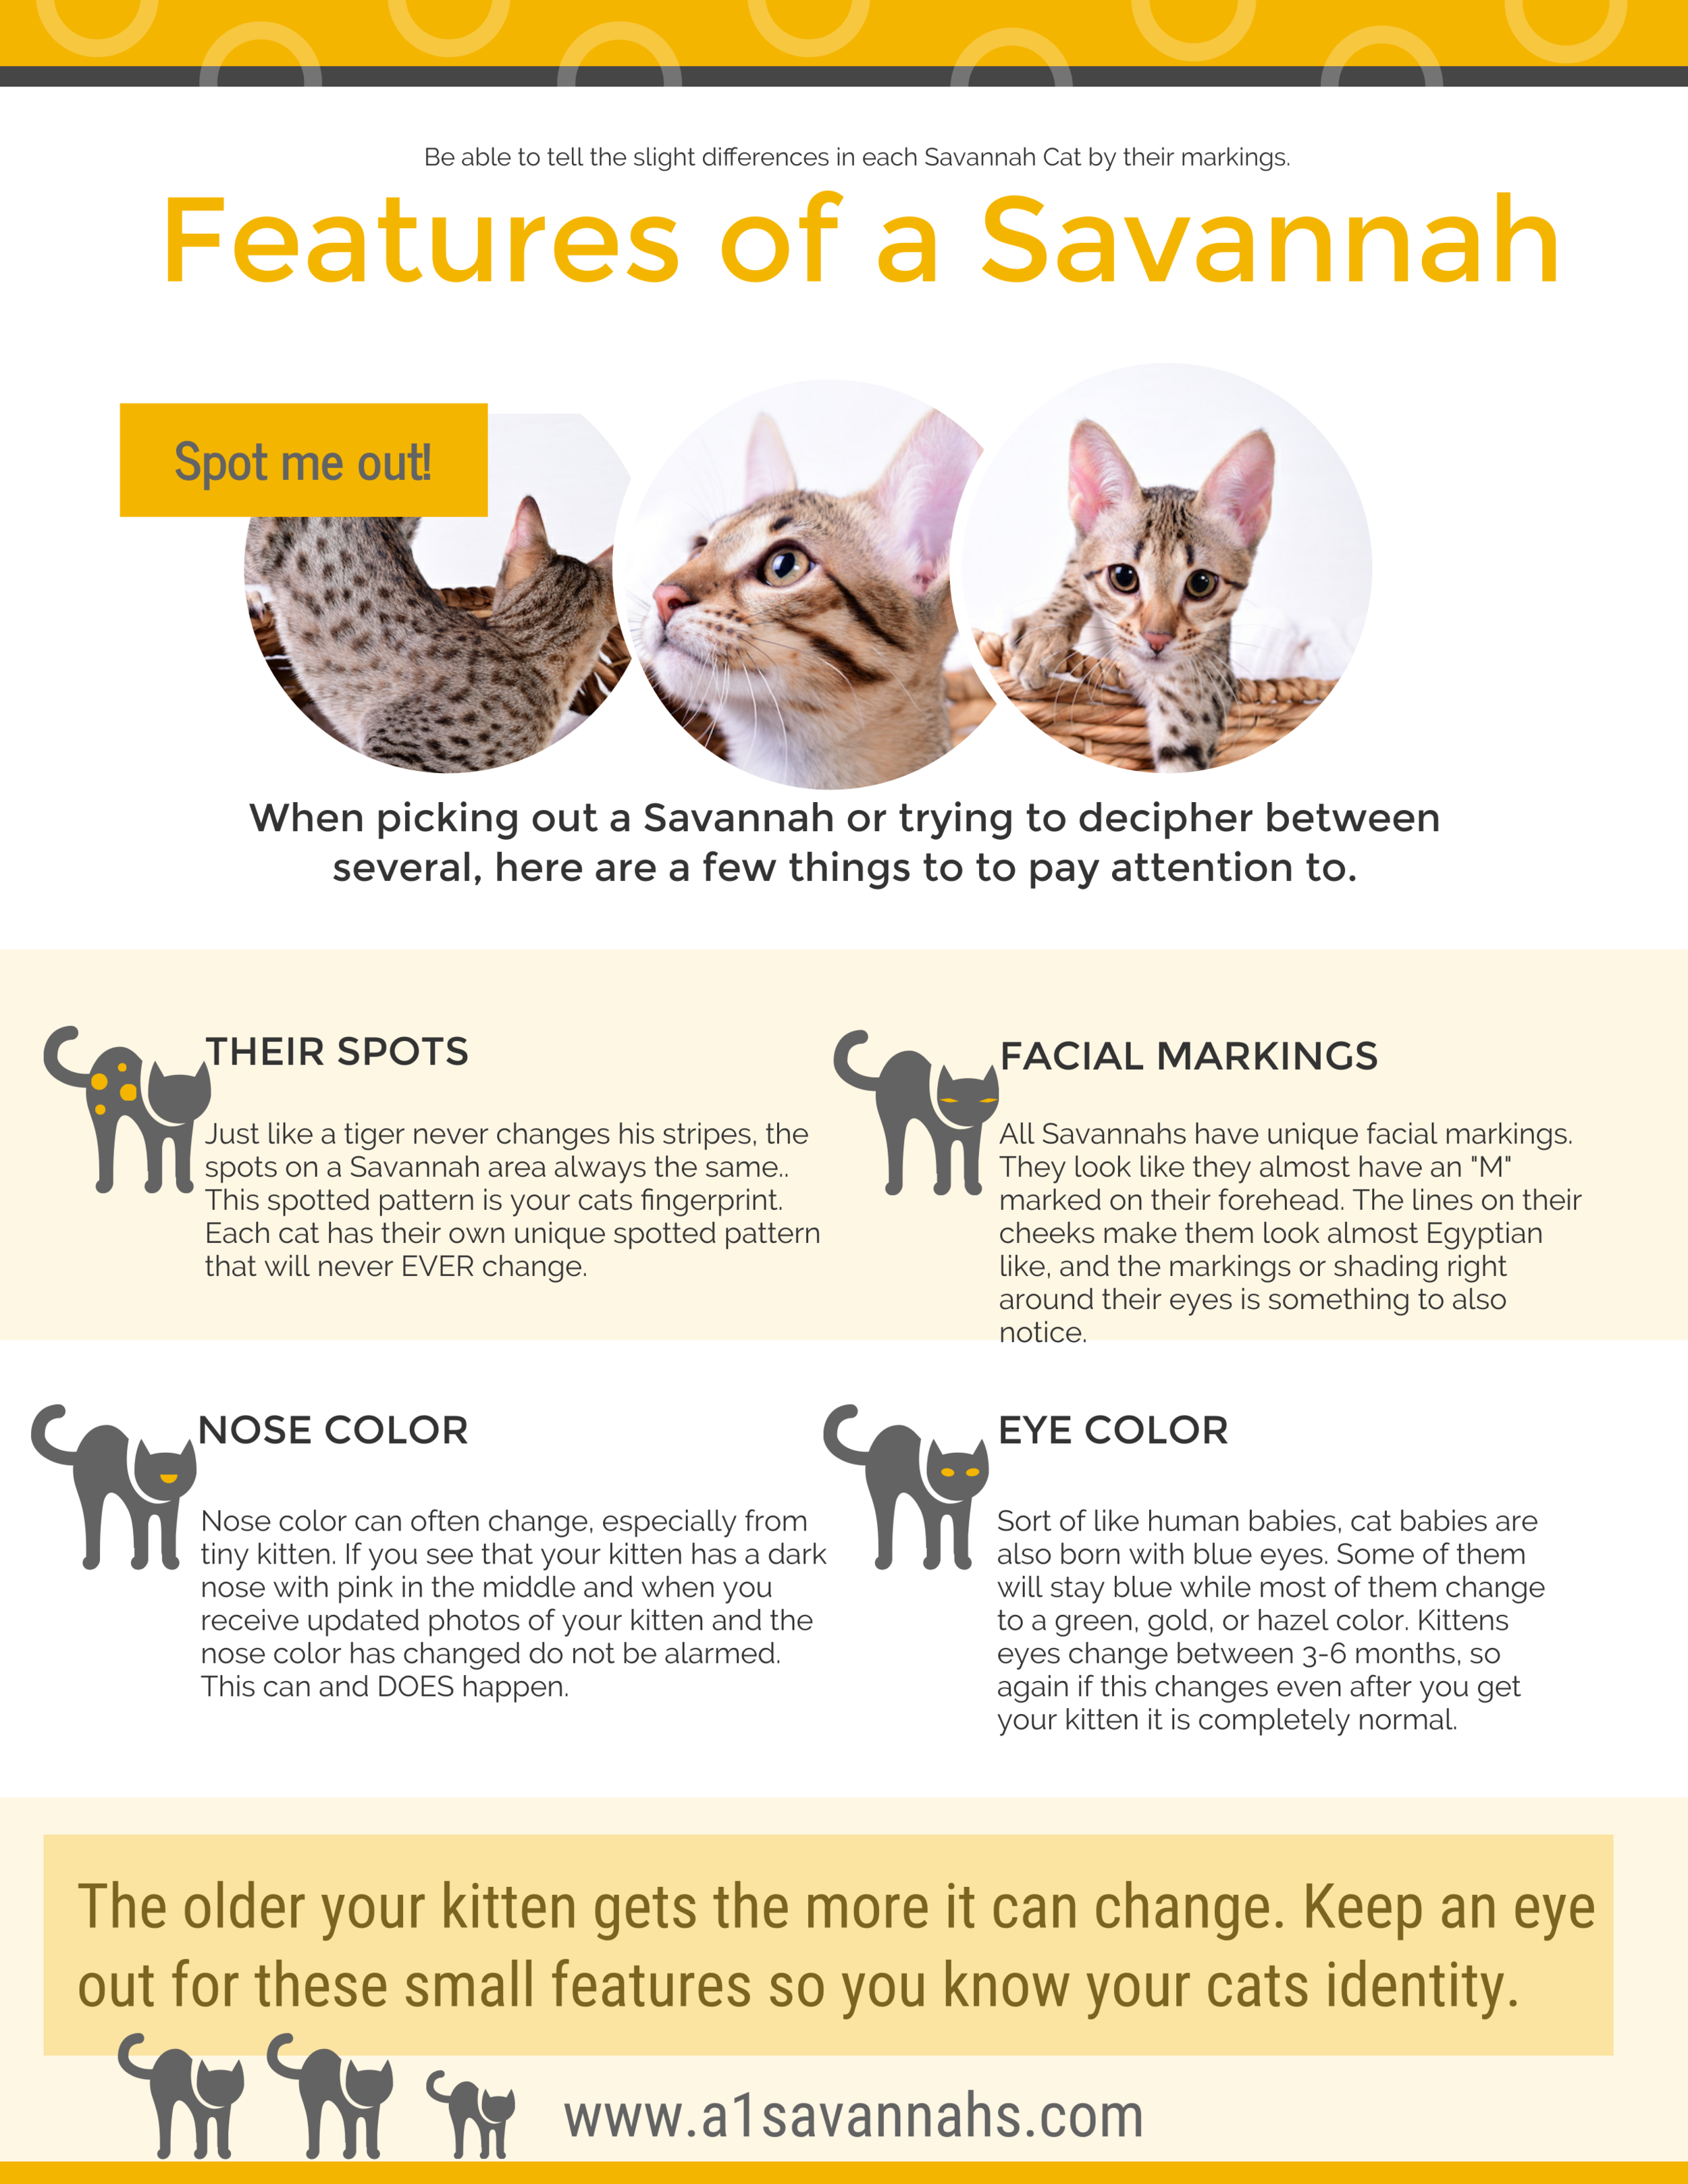 A1 Savannahs features of a savannah info-graph